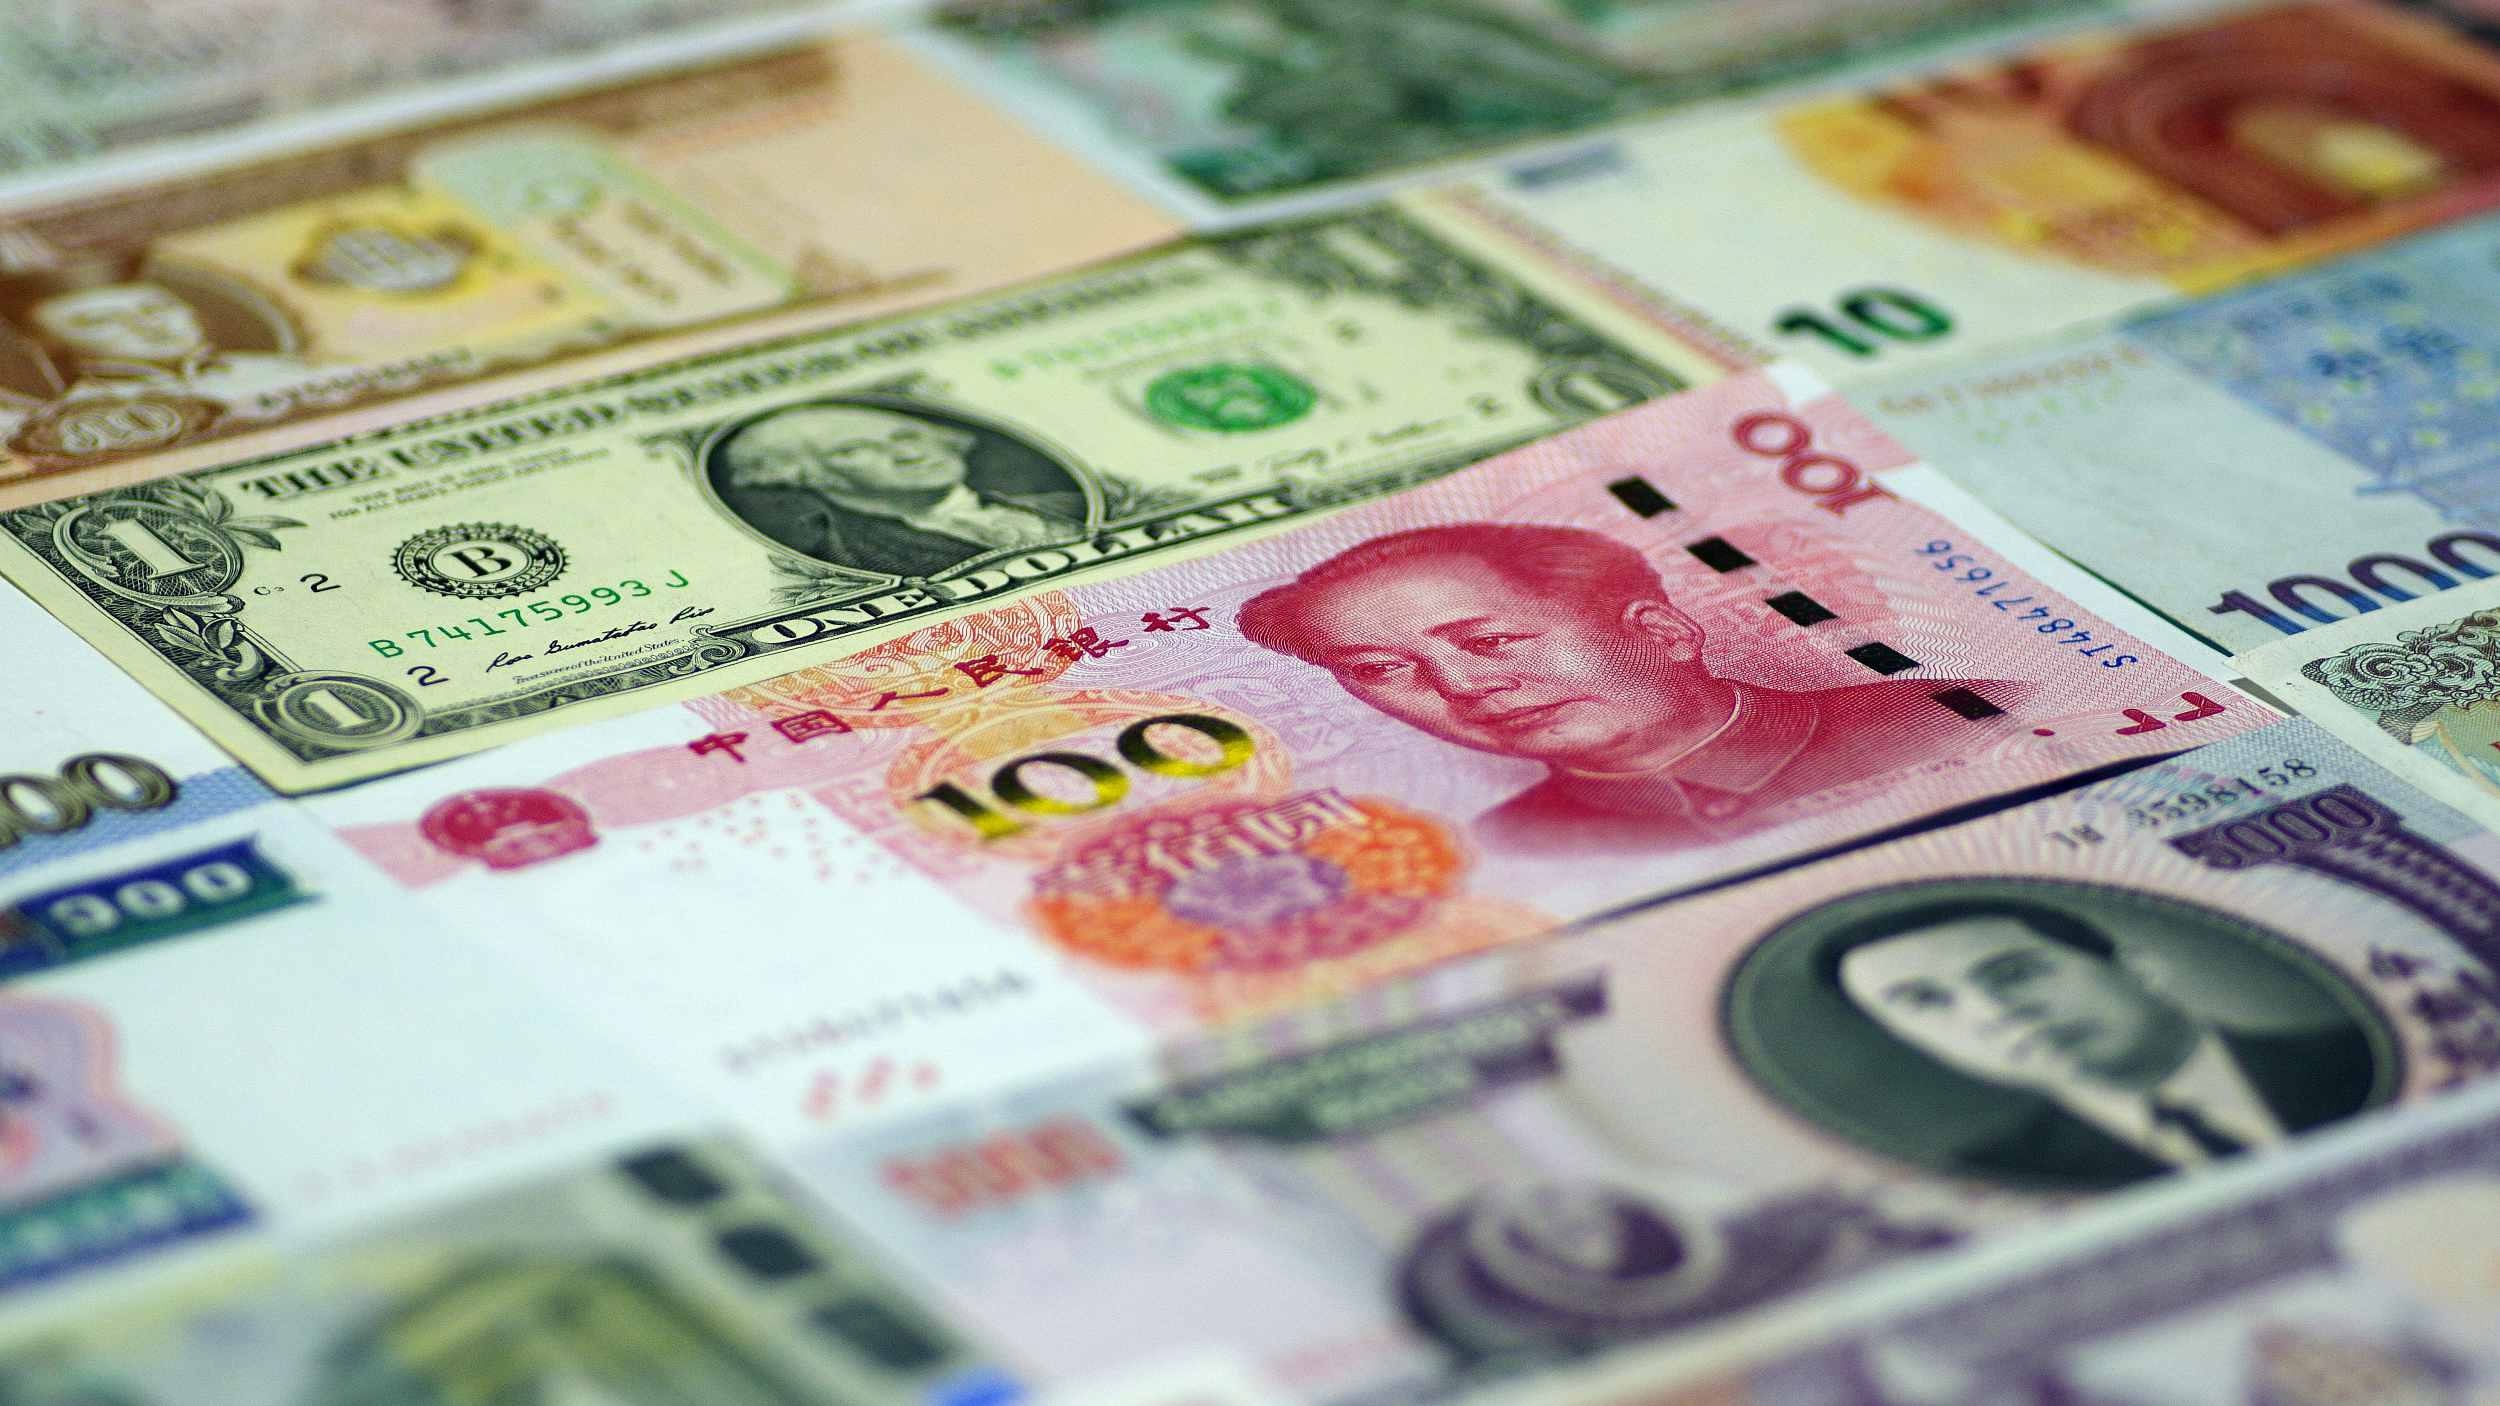 reserve currency The next closest reserve currency is the euro only 318% of known central bank foreign currency reserves were in euros as of the second quarter 2016 the chance of the euro becoming a world currency increase as the eurozone crisis fades.